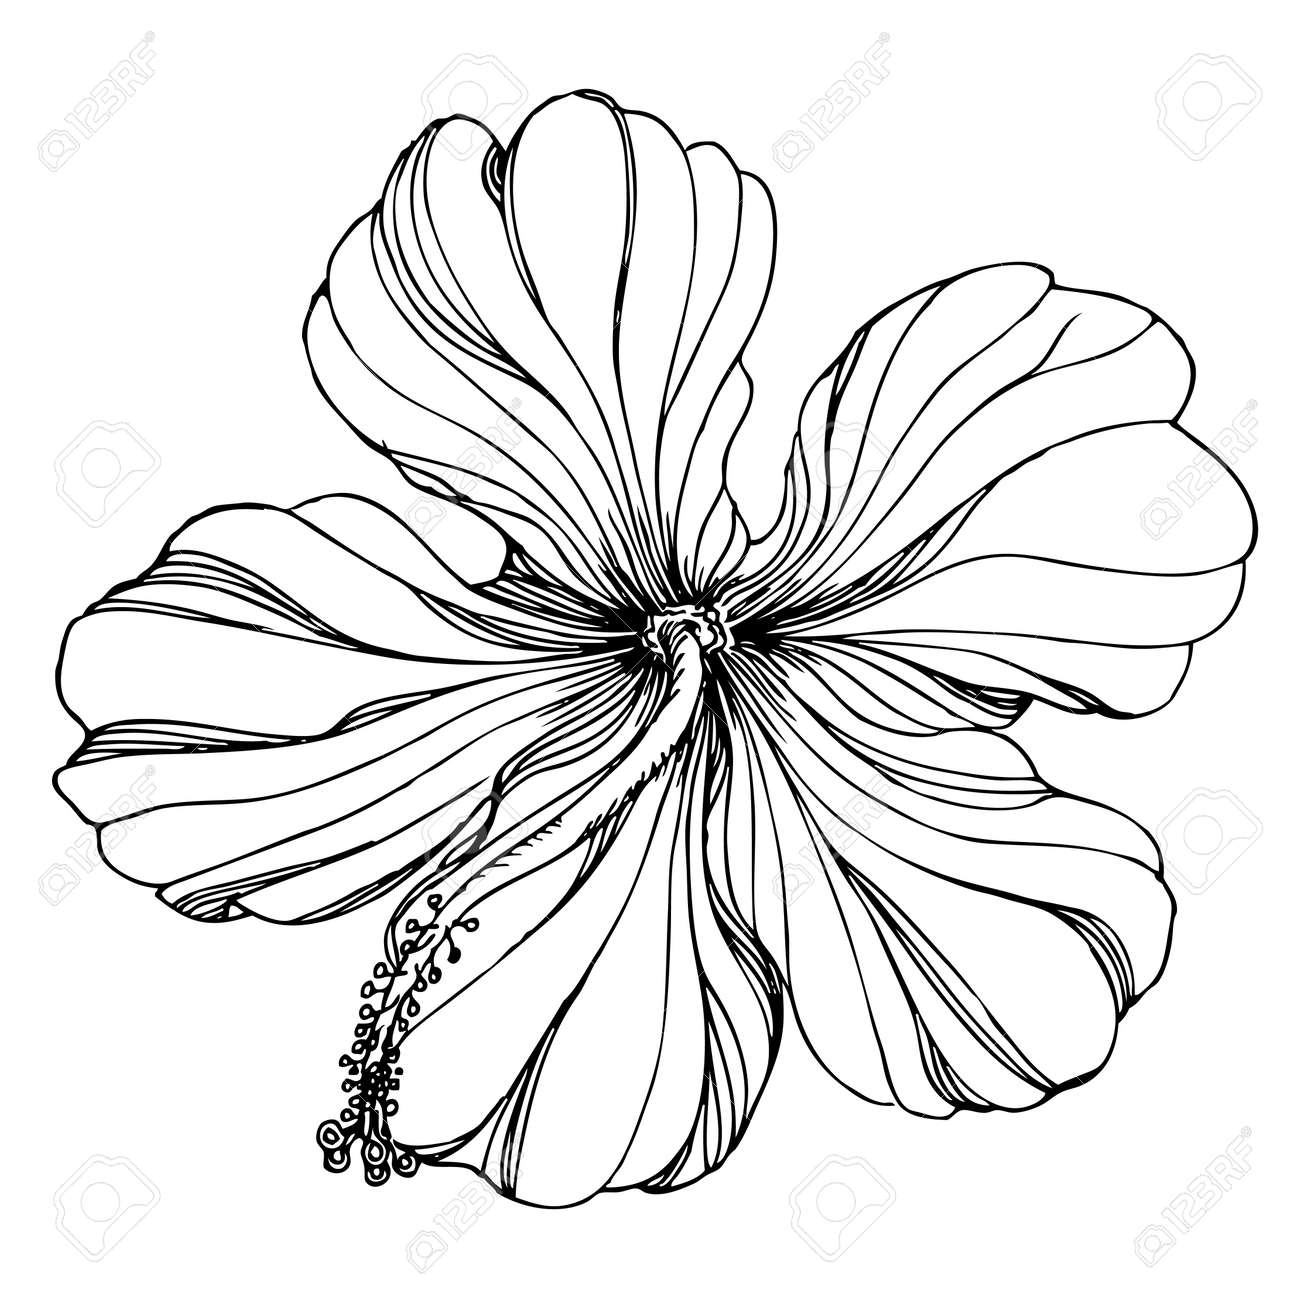 Black And White Floral Ornament With Hibiscus Flower Royalty Free